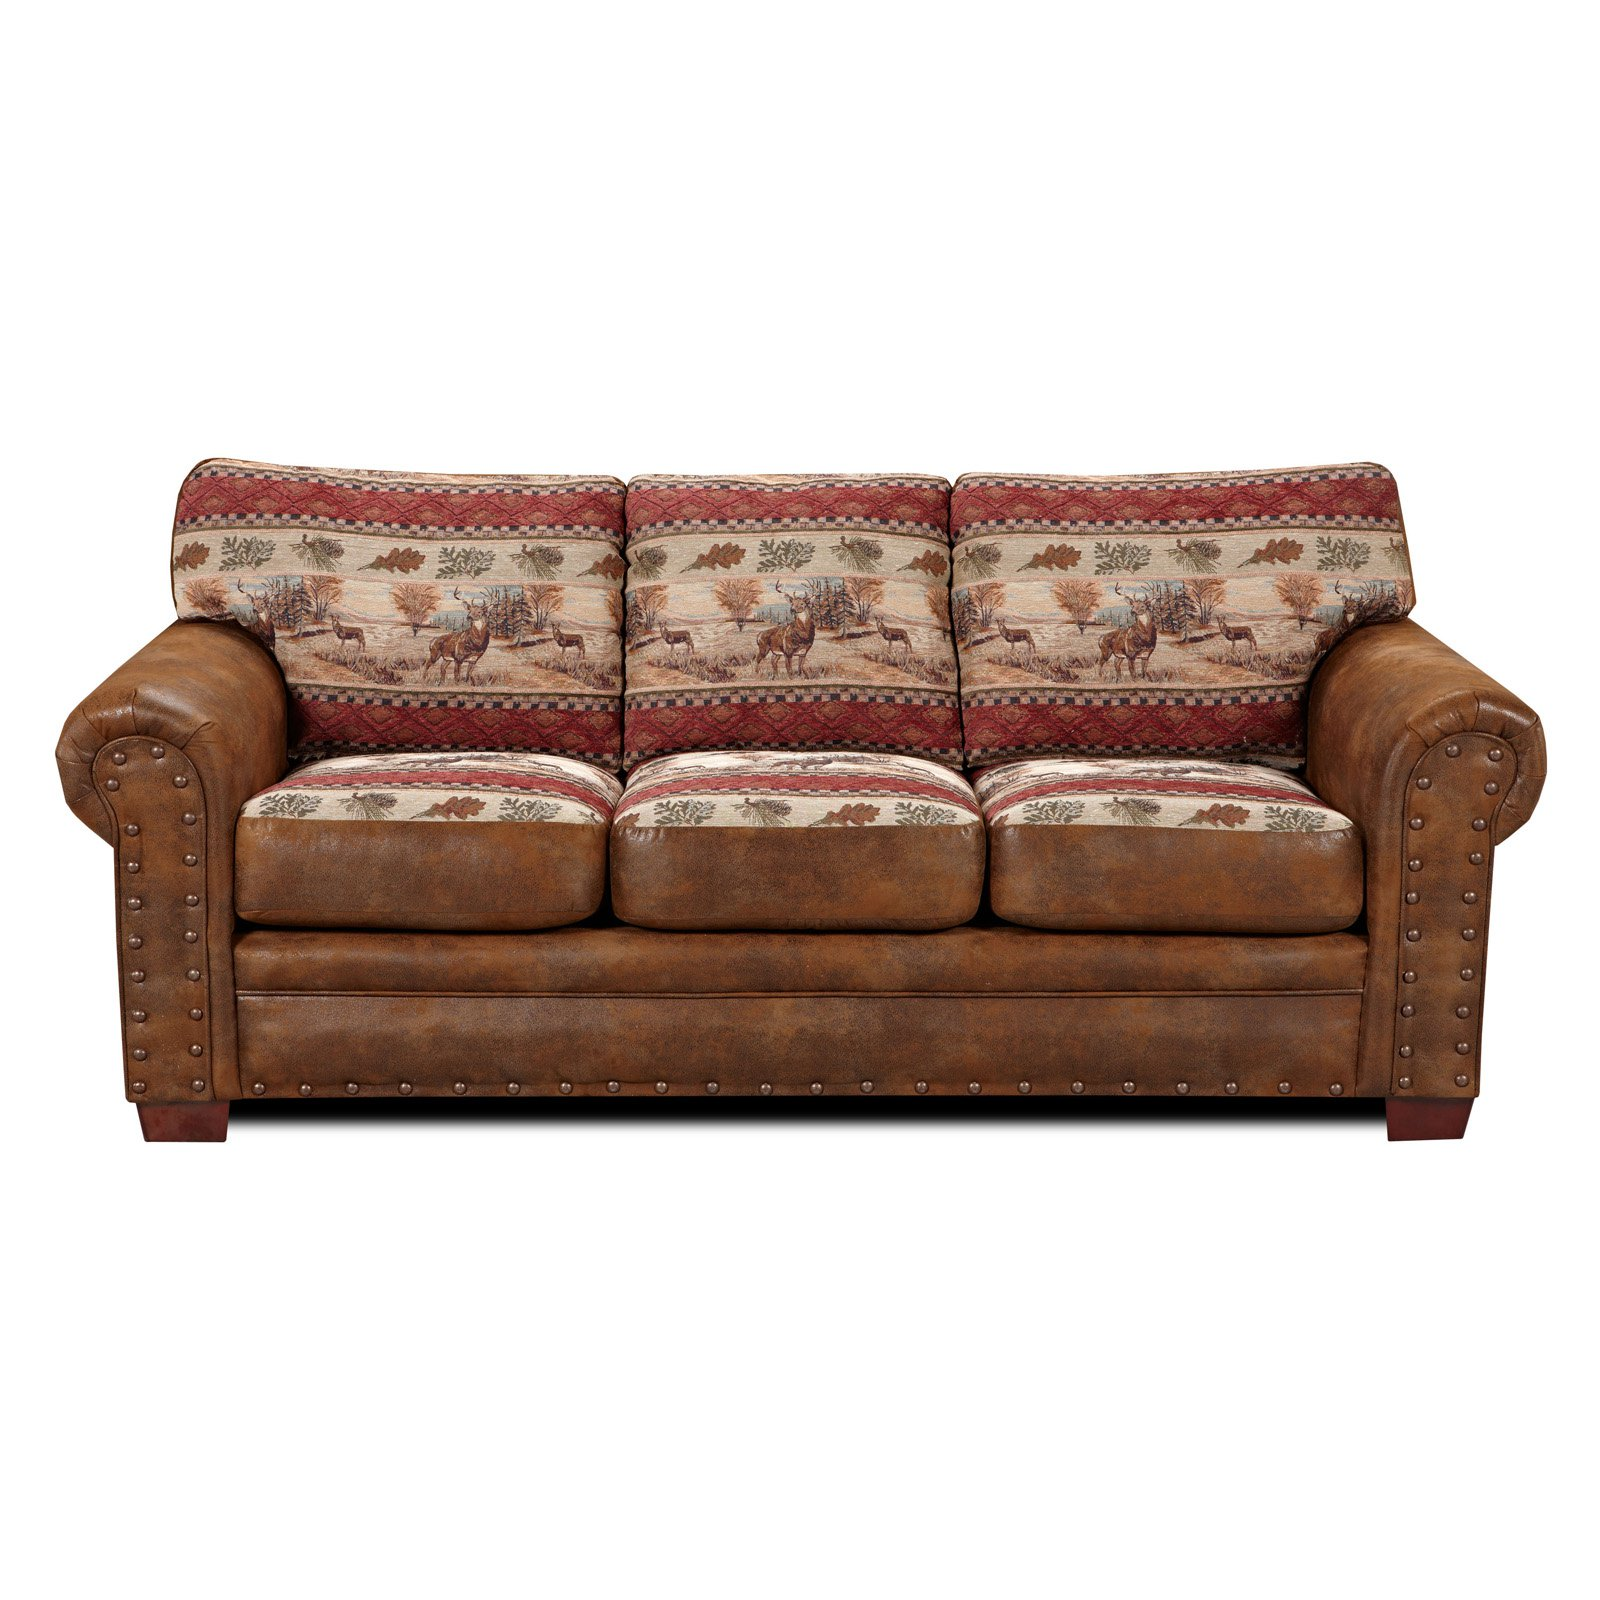 American Furniture Classics Deer Valley Sofa by Overstock